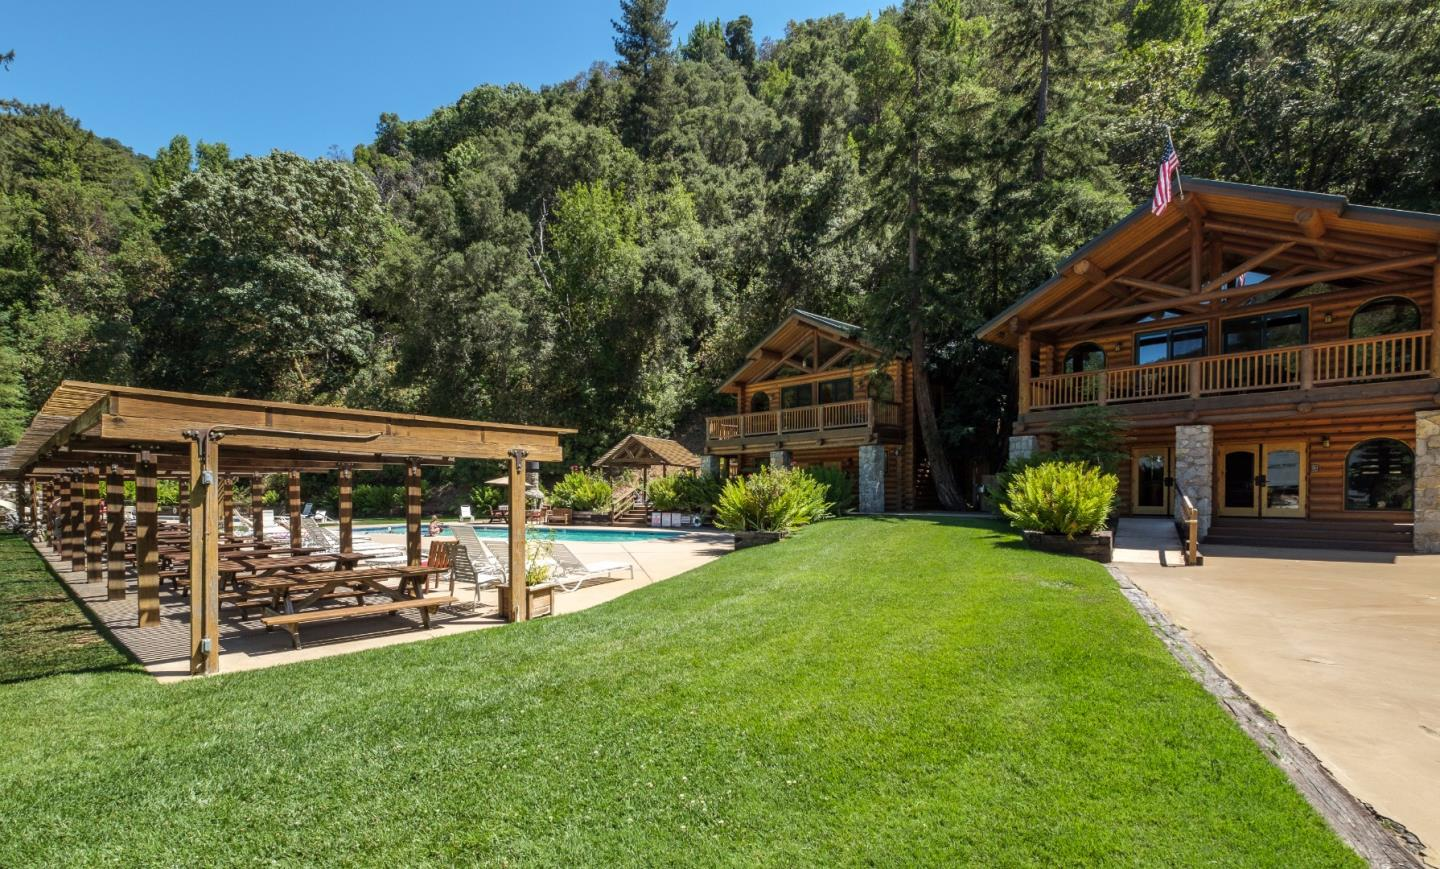 Additional photo for property listing at 36865 Dormody Road 36865 Dormody Road Carmel, Californie 93923 États-Unis